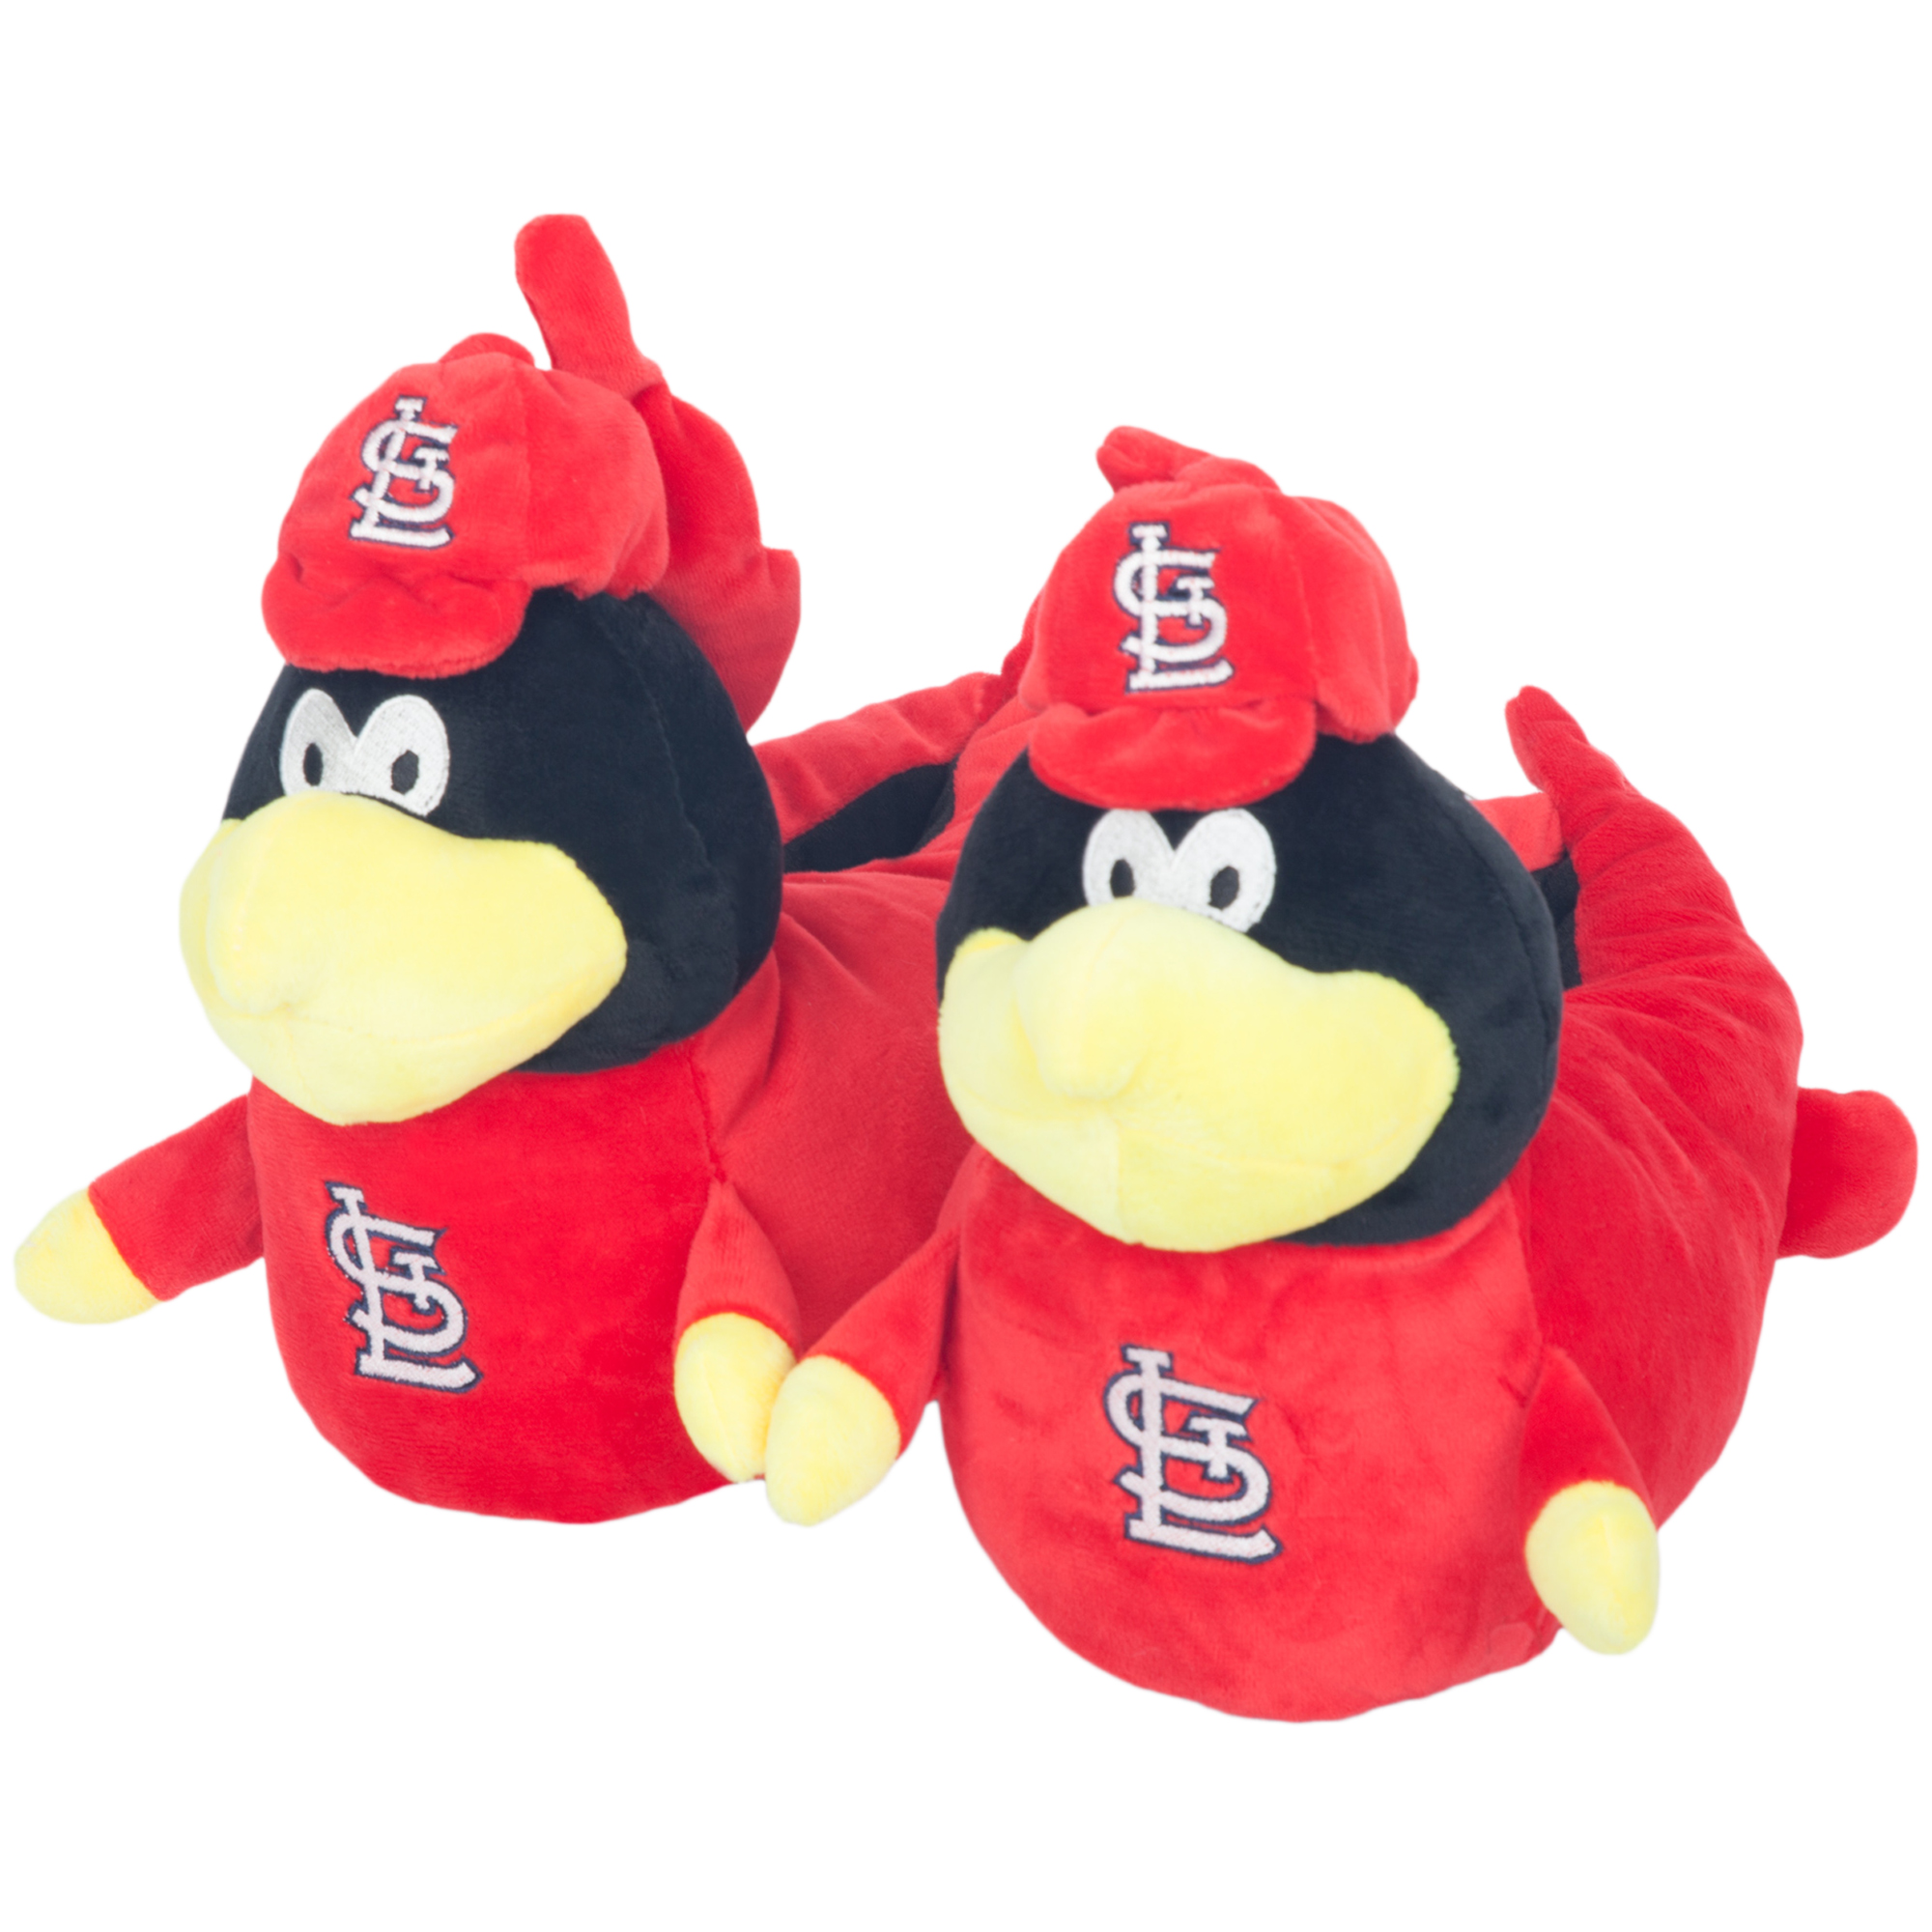 St. Louis Cardinals Youth 3D Mascot Slippers